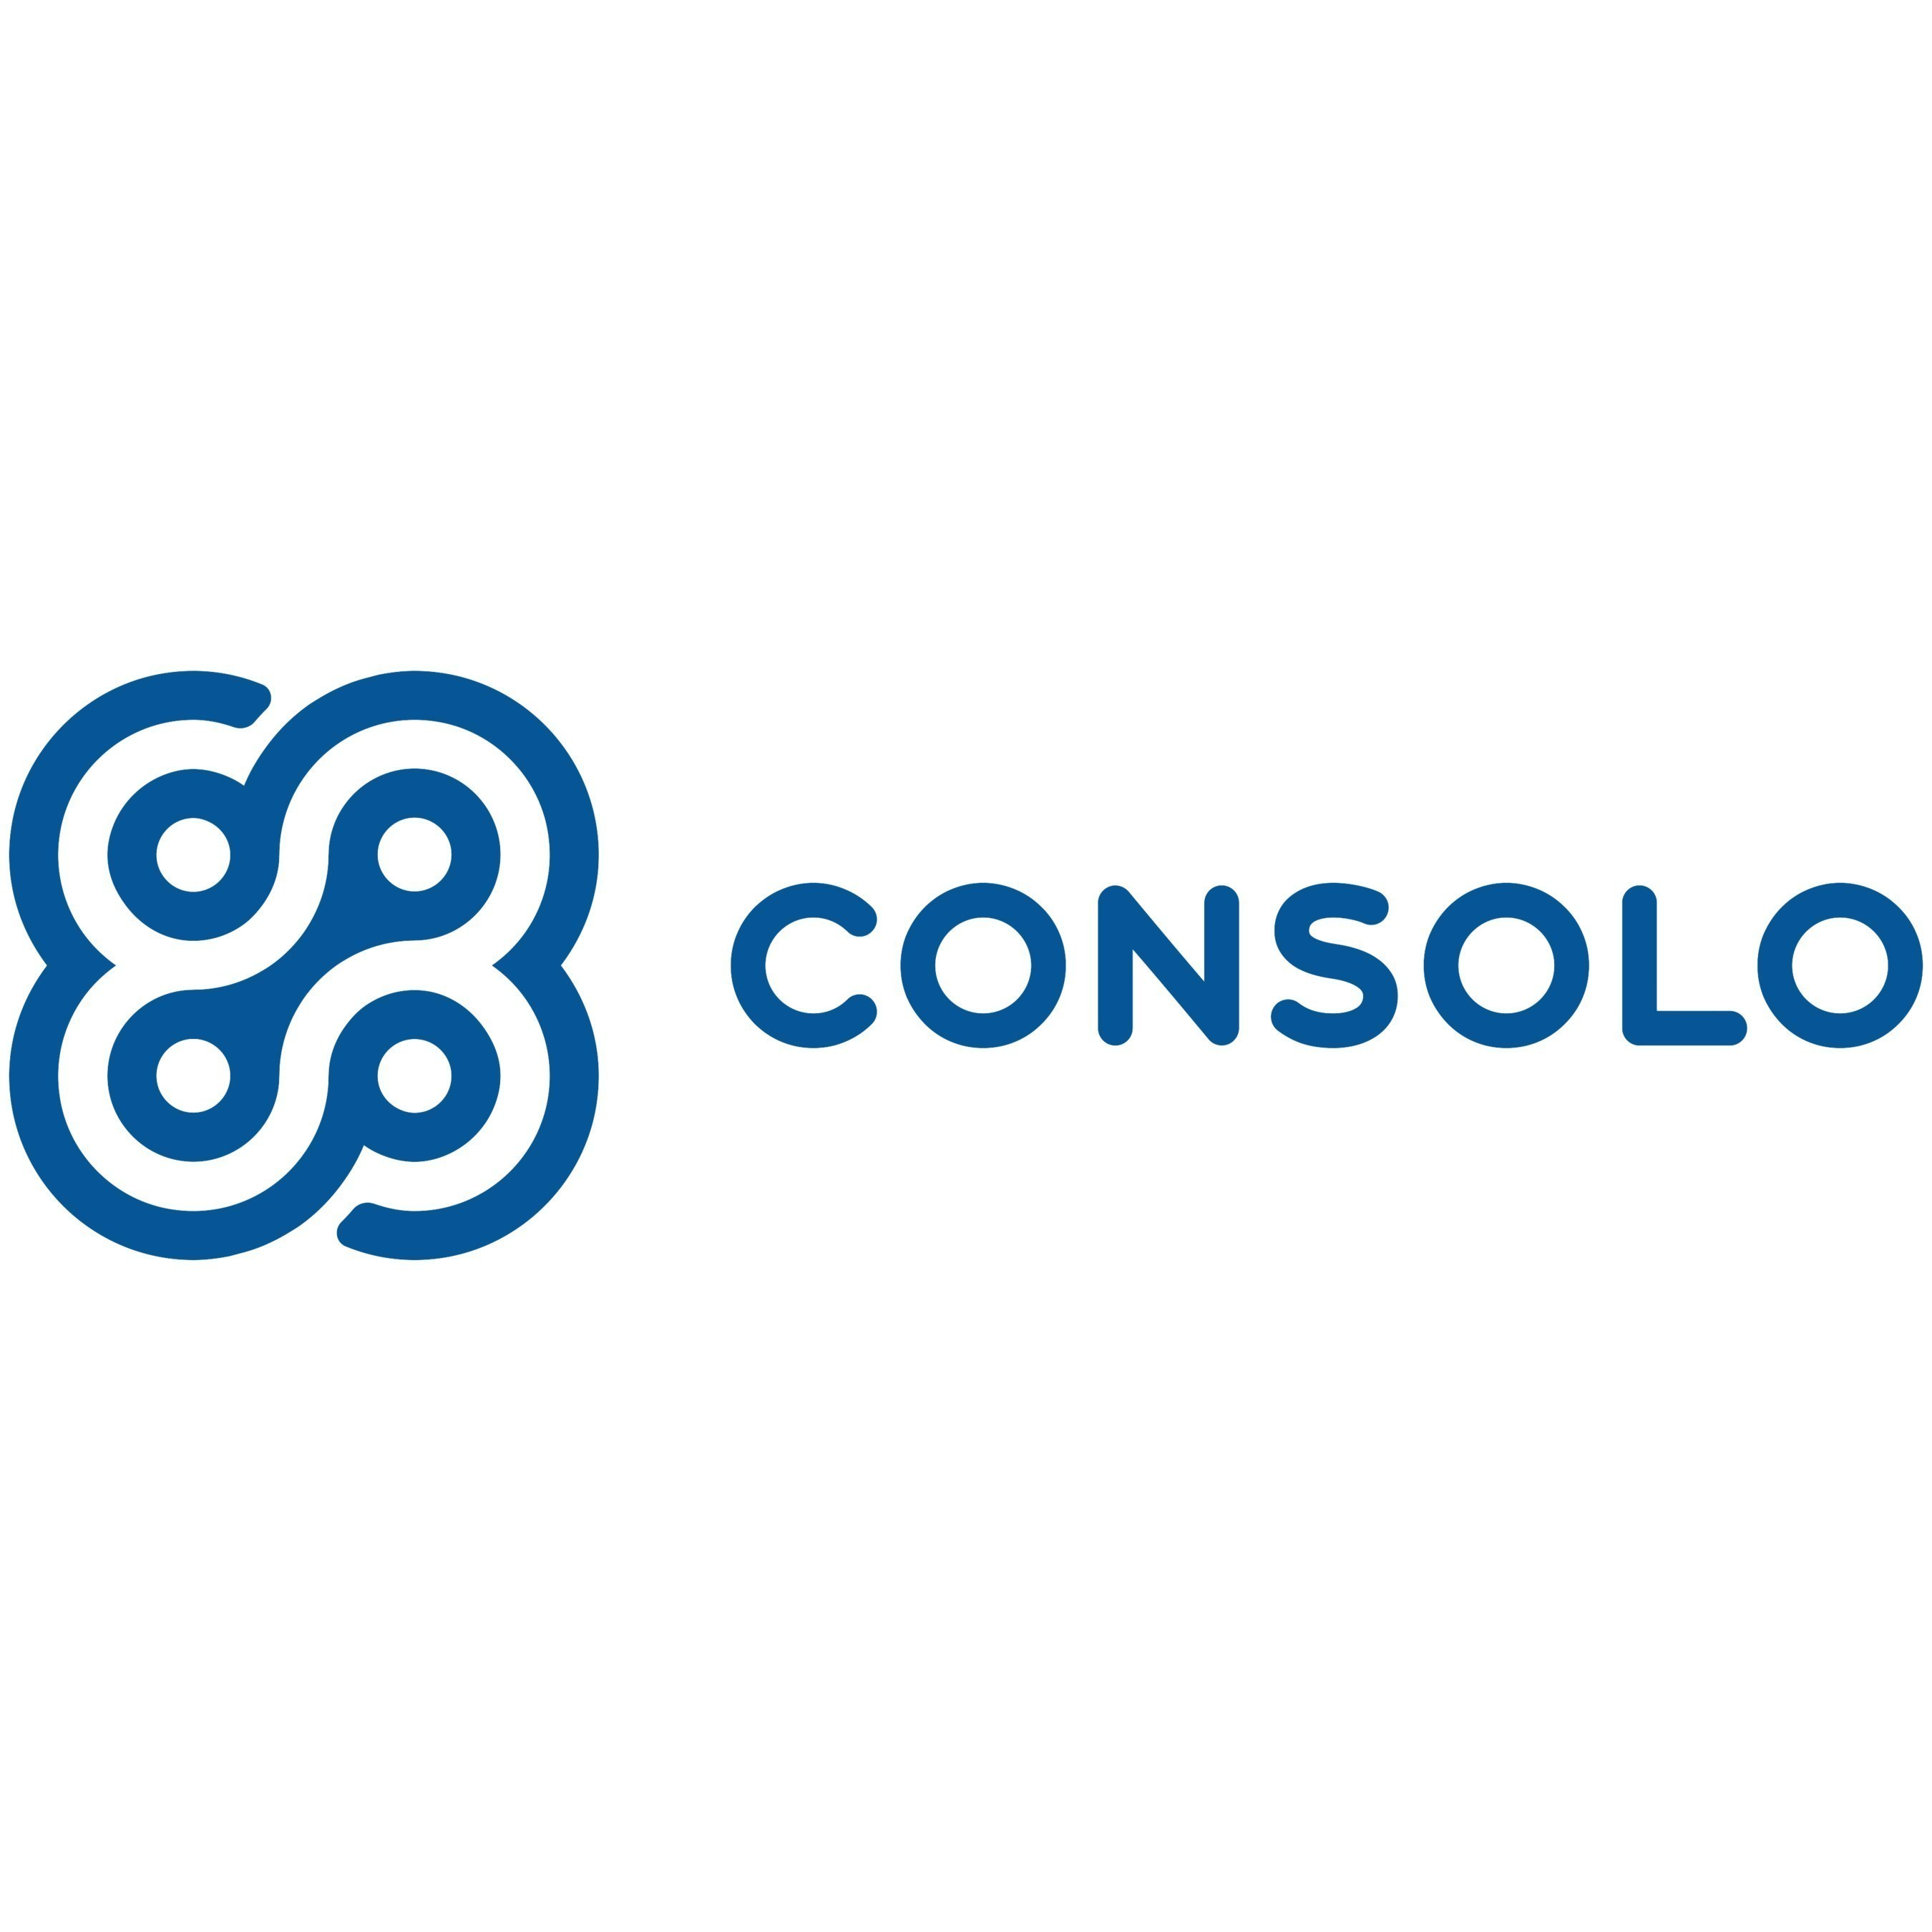 www.consoloservices.com